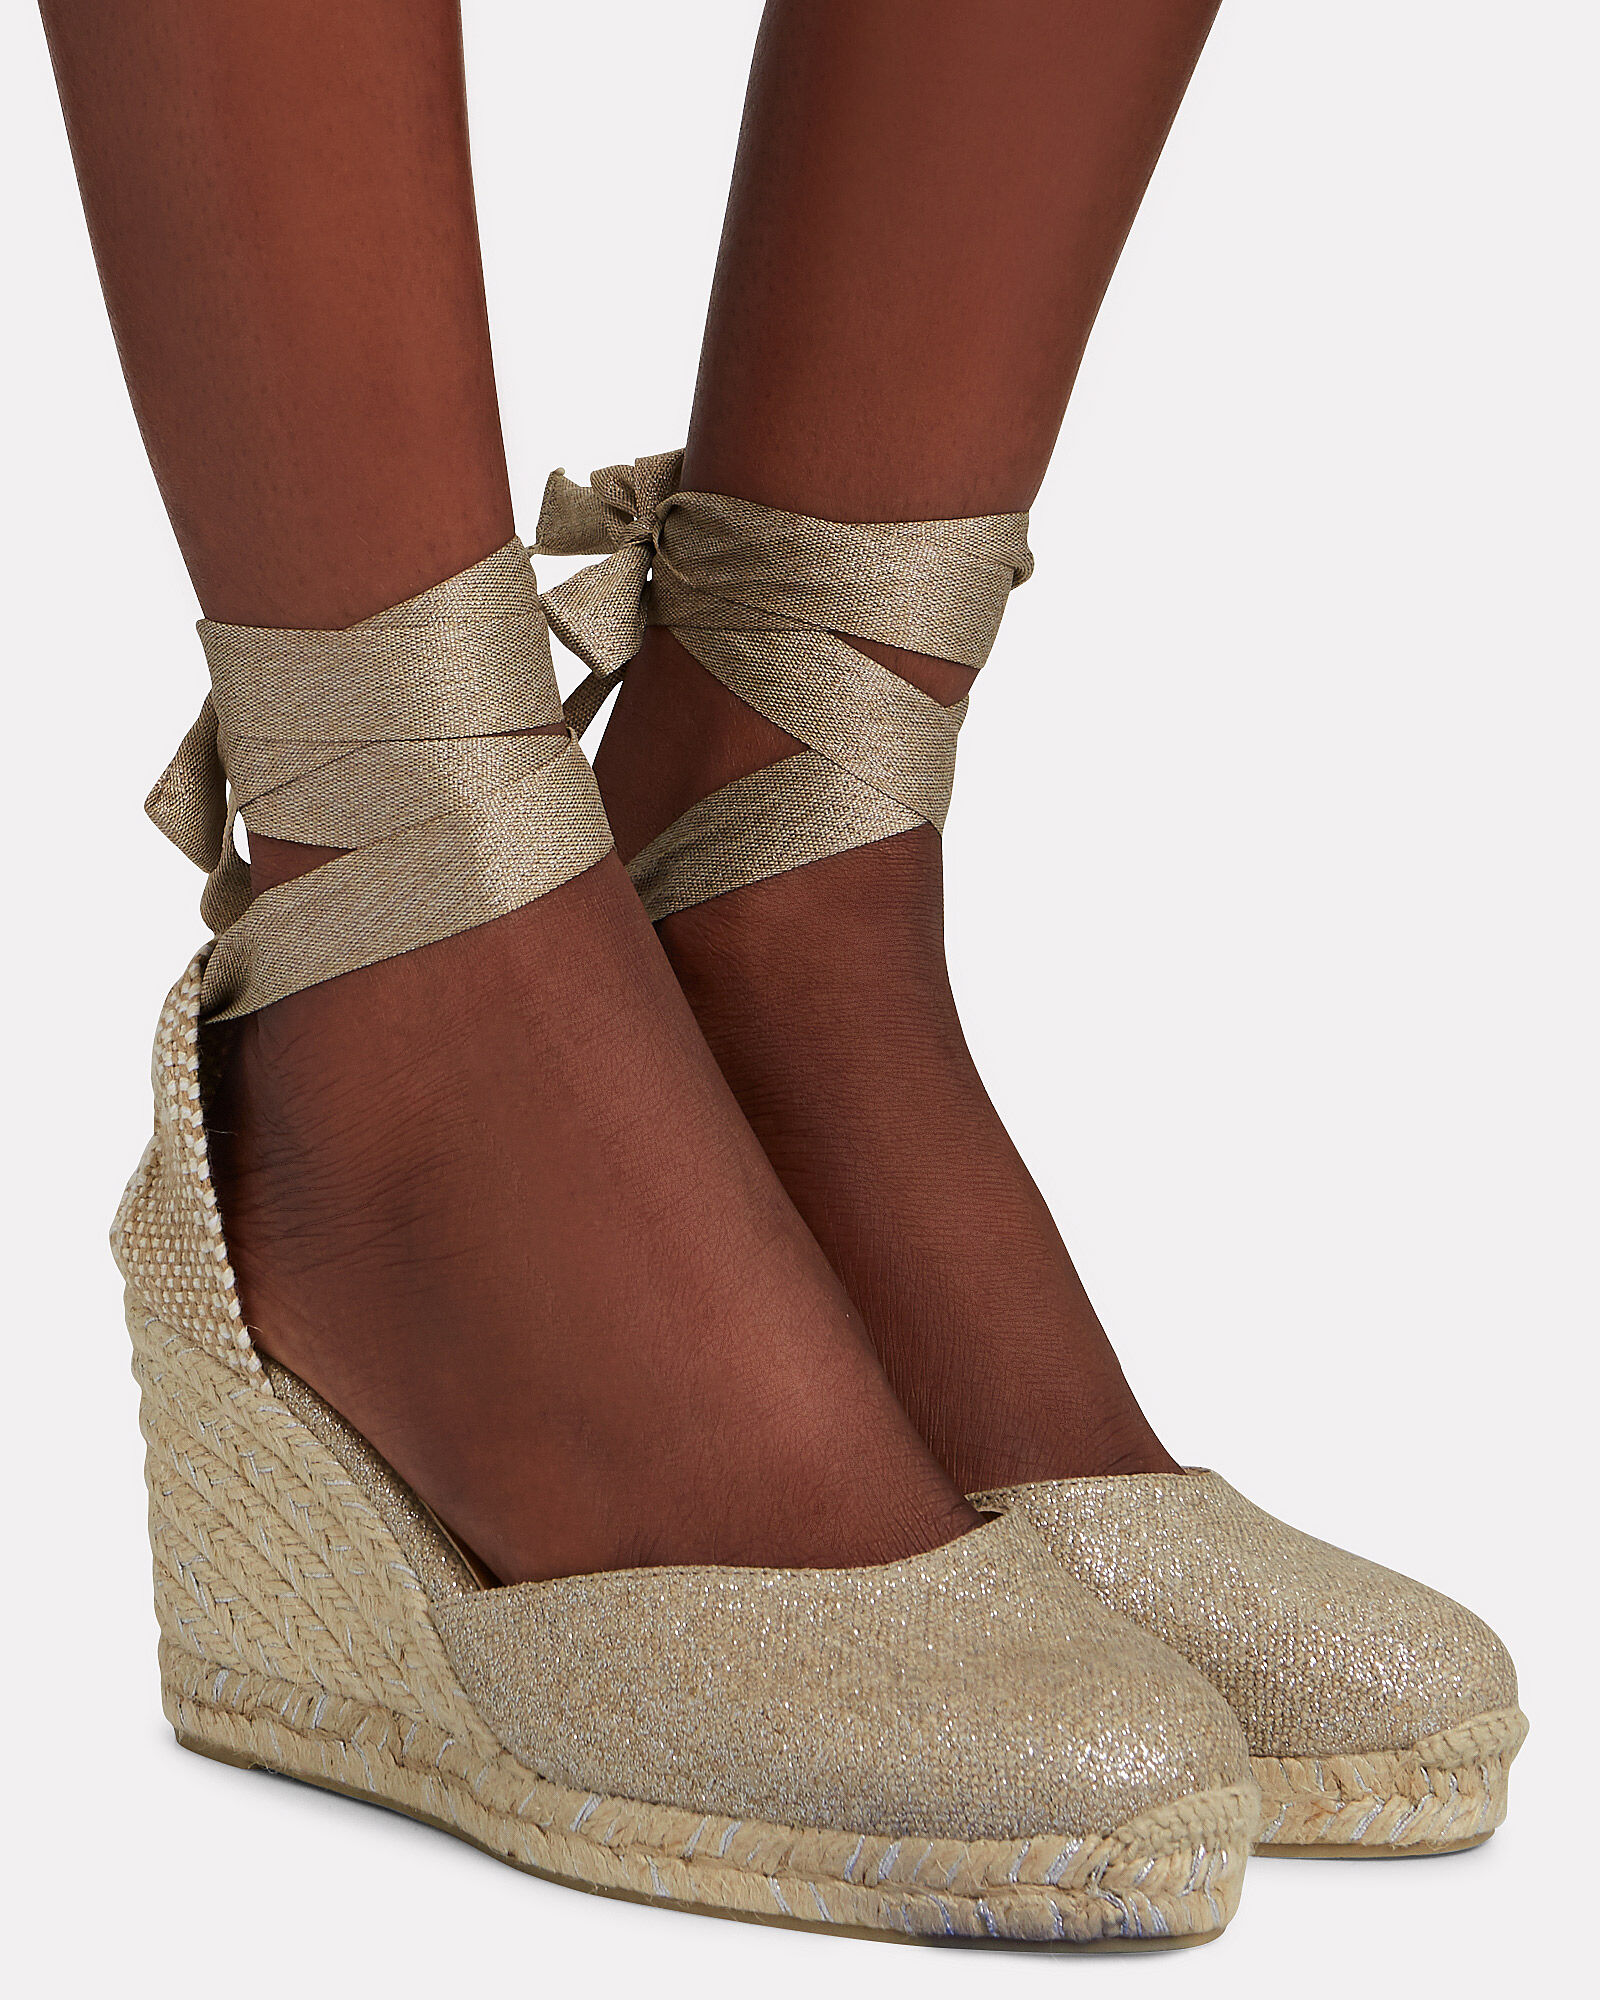 Carina 80 Espadrille Wedges, SILVER, hi-res